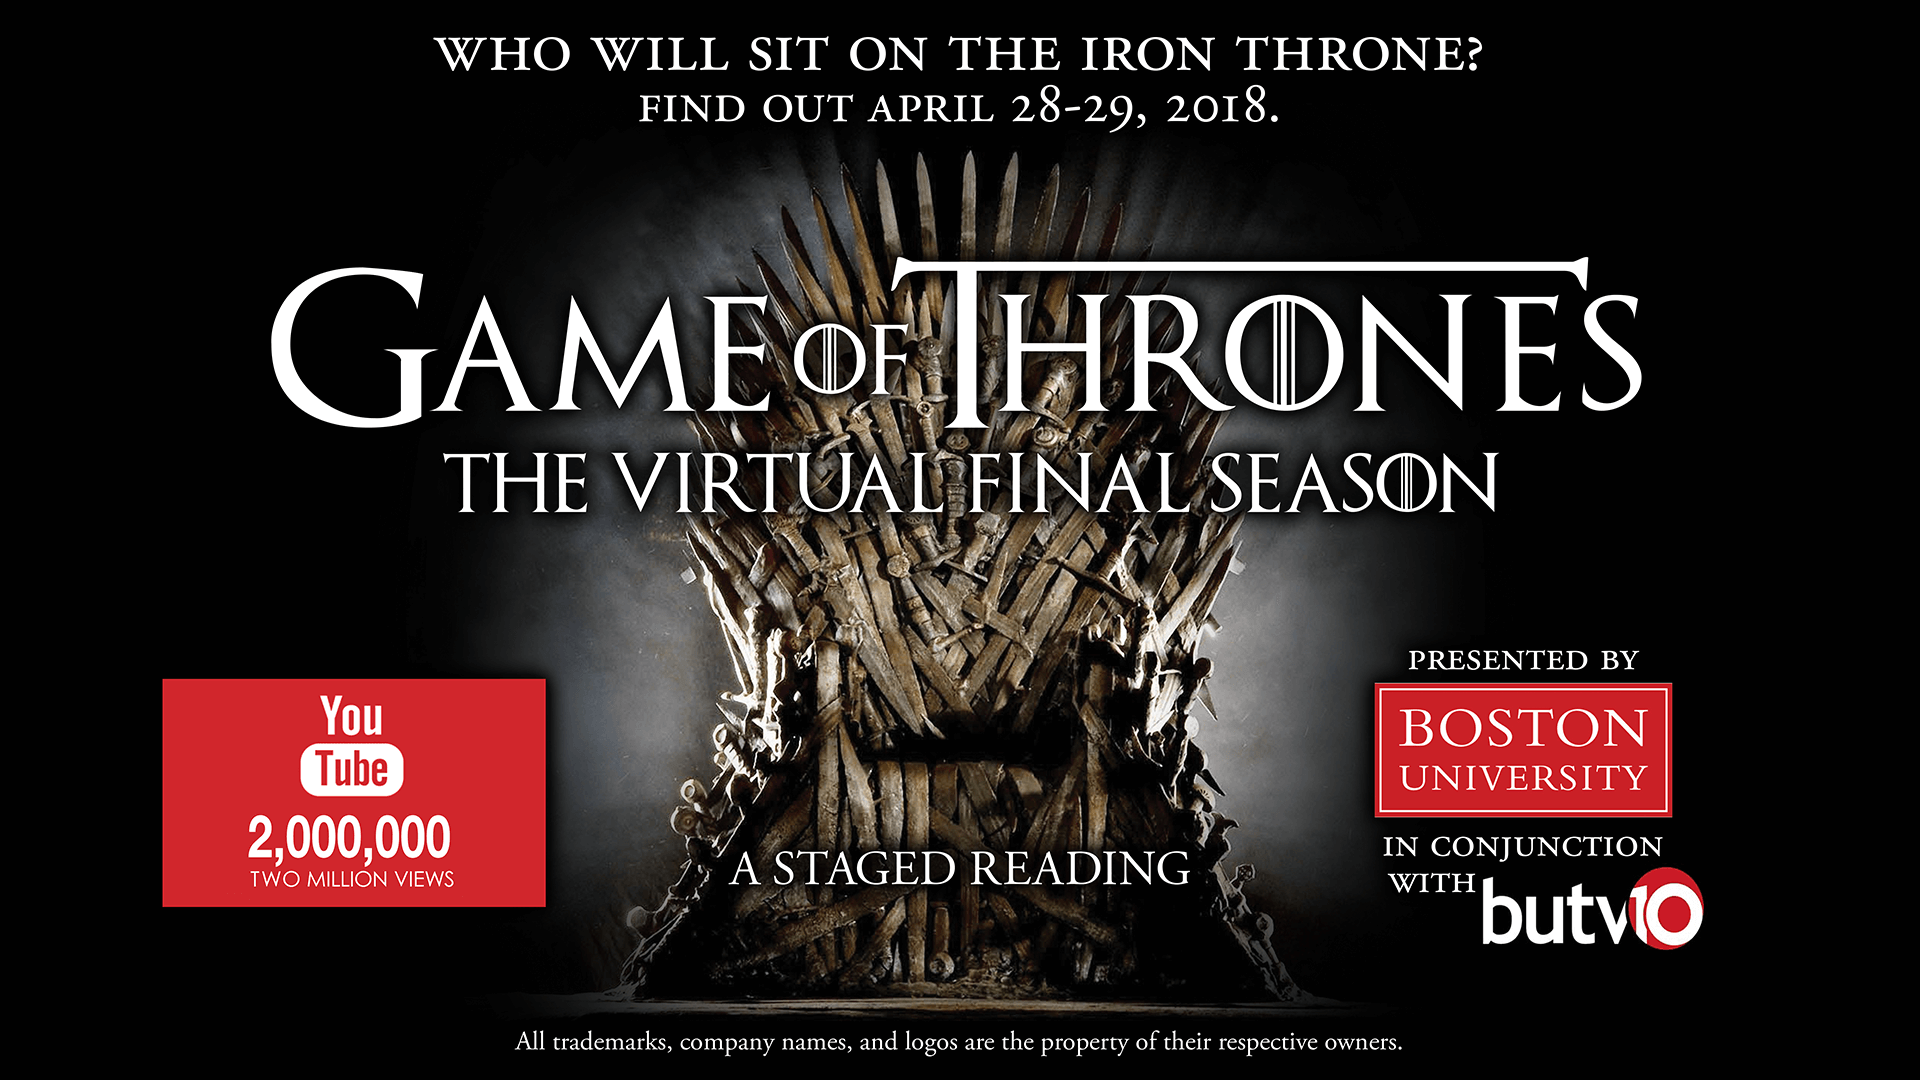 BU Game of Thrones virtual season two million views banner